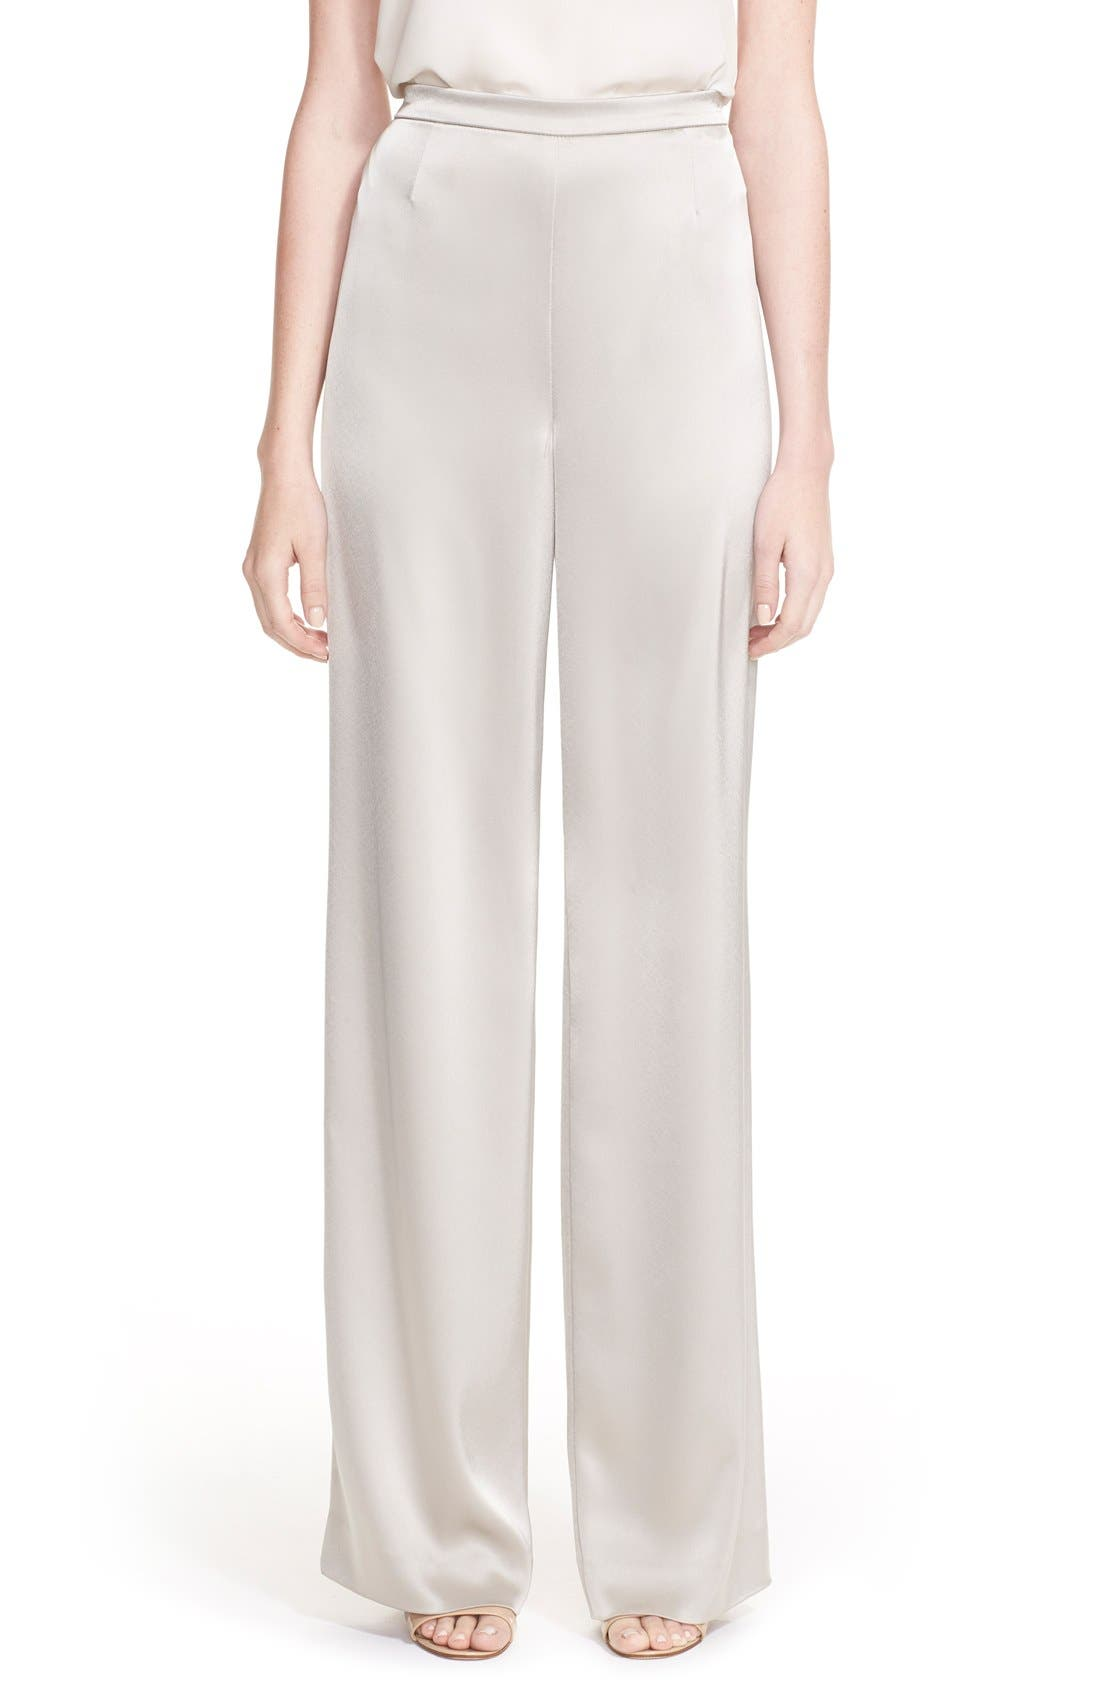 Alternate Image 1 Selected - St. John Collection 'Kate' Liquid Satin Pants